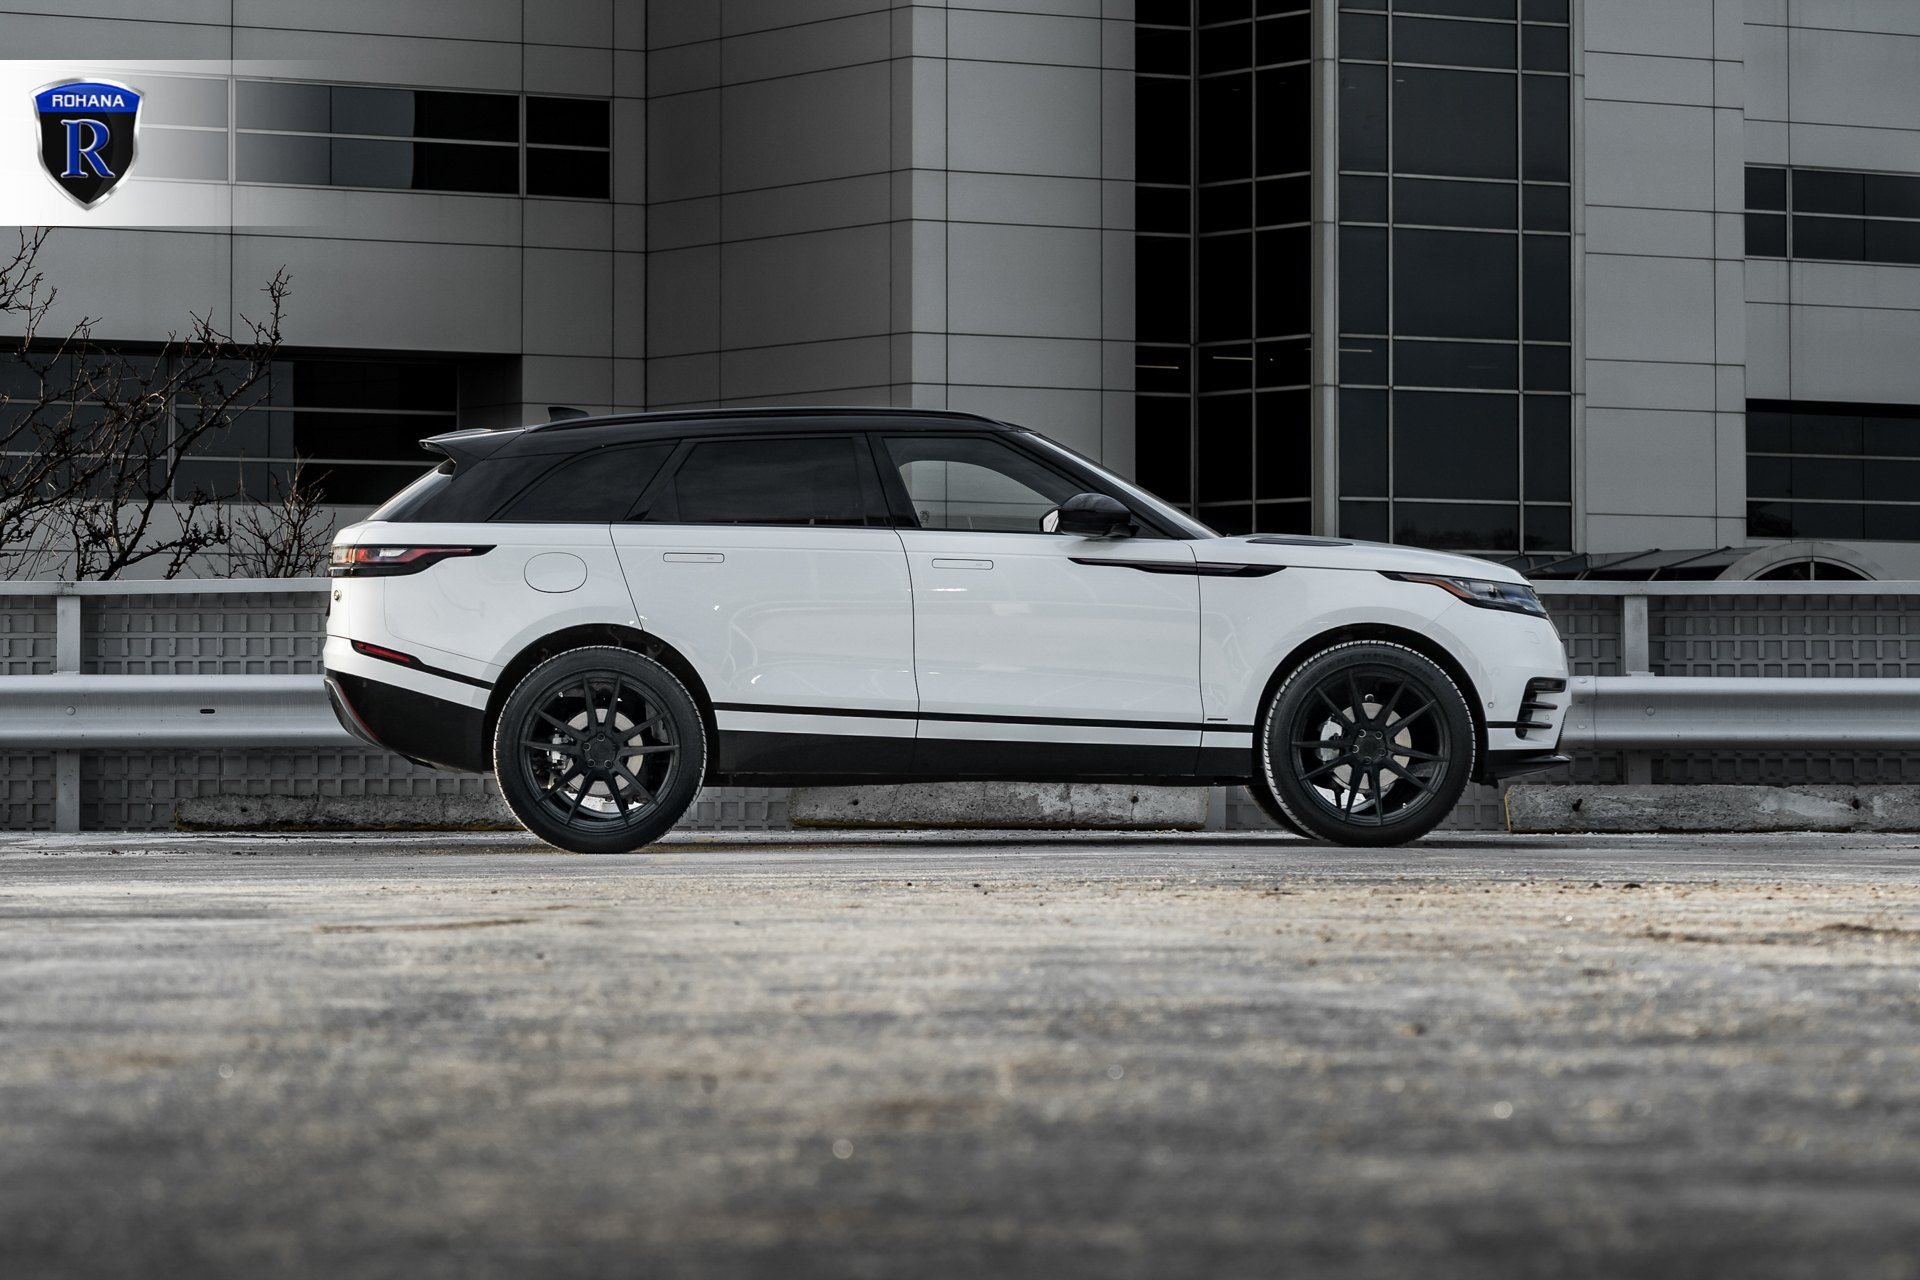 New 2019 Land Rover-Range Rover Velar P340 S Range Rover Velar P340 S for sale $61,200 at M and V Leasing in Brooklyn NY 11223 1